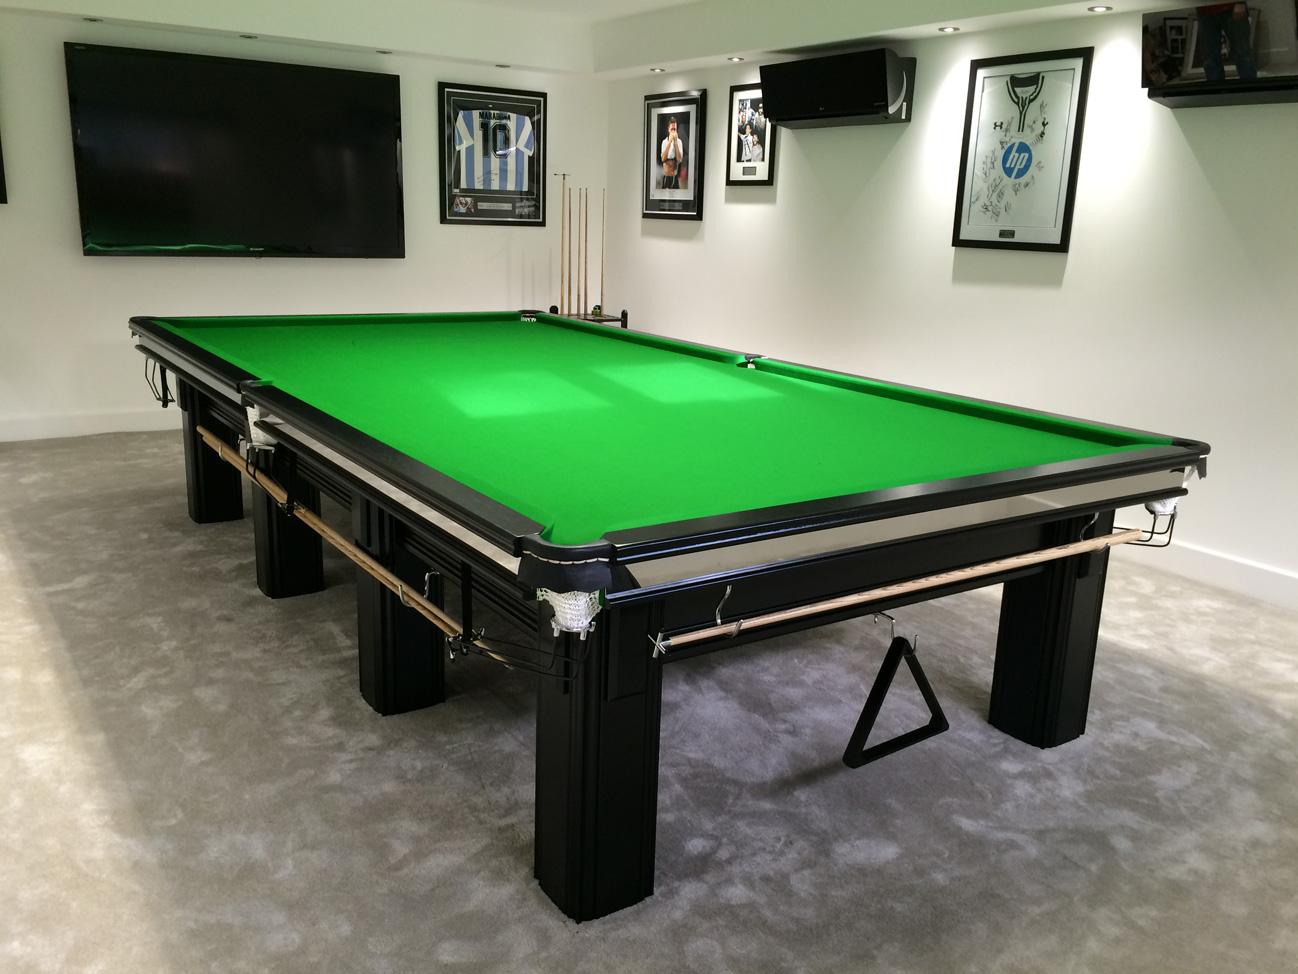 connoisseur 12 39 x 6 39 snooker table in black with green cloth